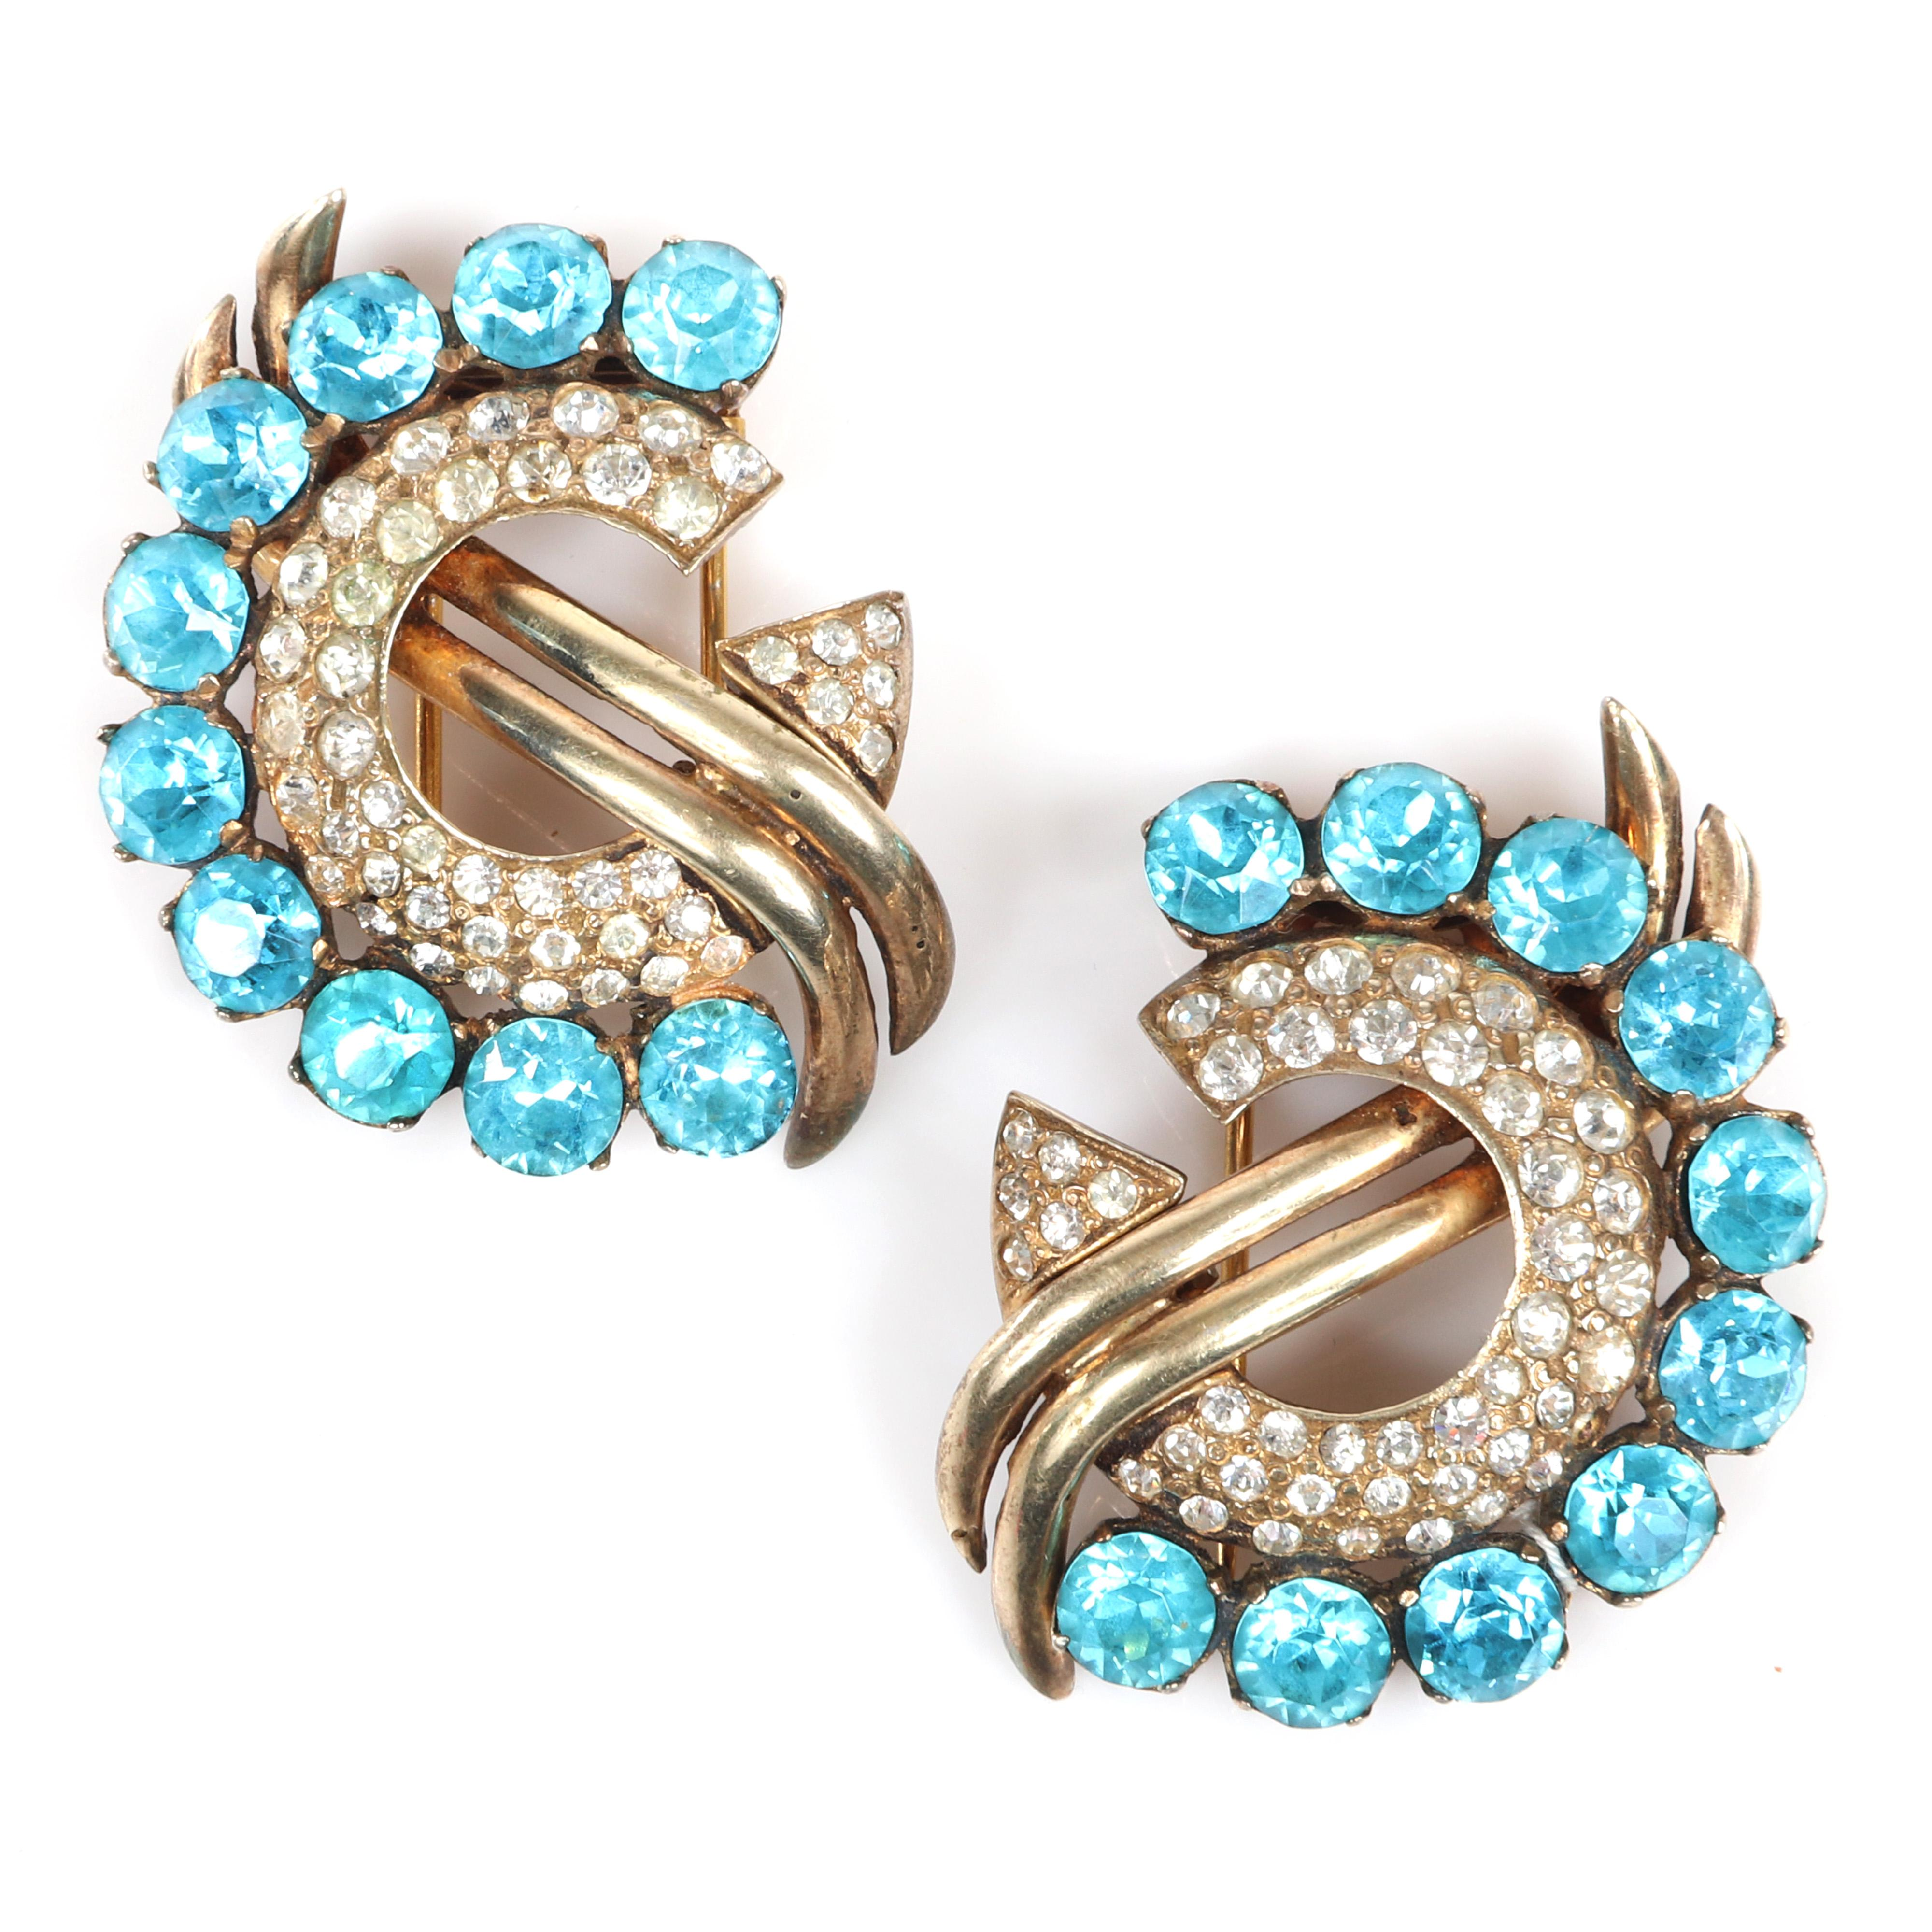 """Eisenberg Original pair of curving fur clips with gold wash over pot metal. clear pave and round aqua faceted rhinestones, c. 1940. 1 3/4"""" x 1 1/2"""""""